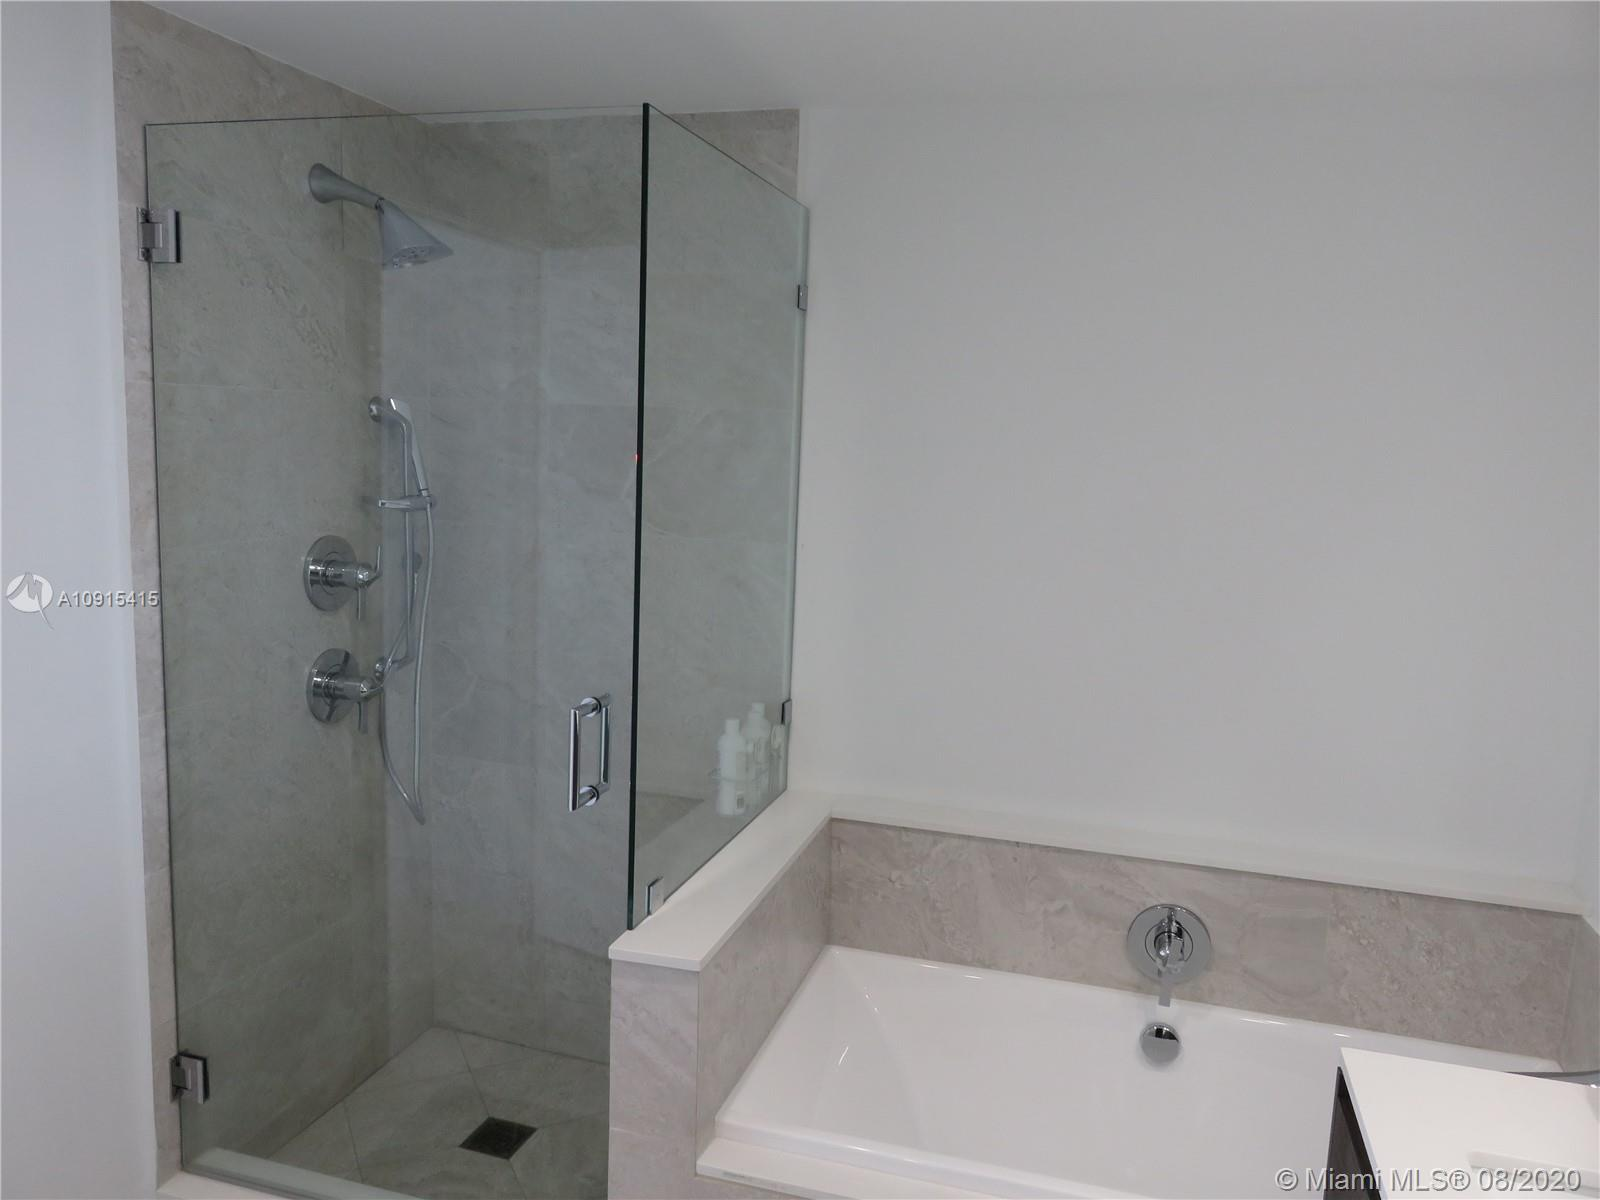 2 BEDS/2.5BATHS with direct views of Miami City skyline and partial bay! Unit has a large wrap aroun